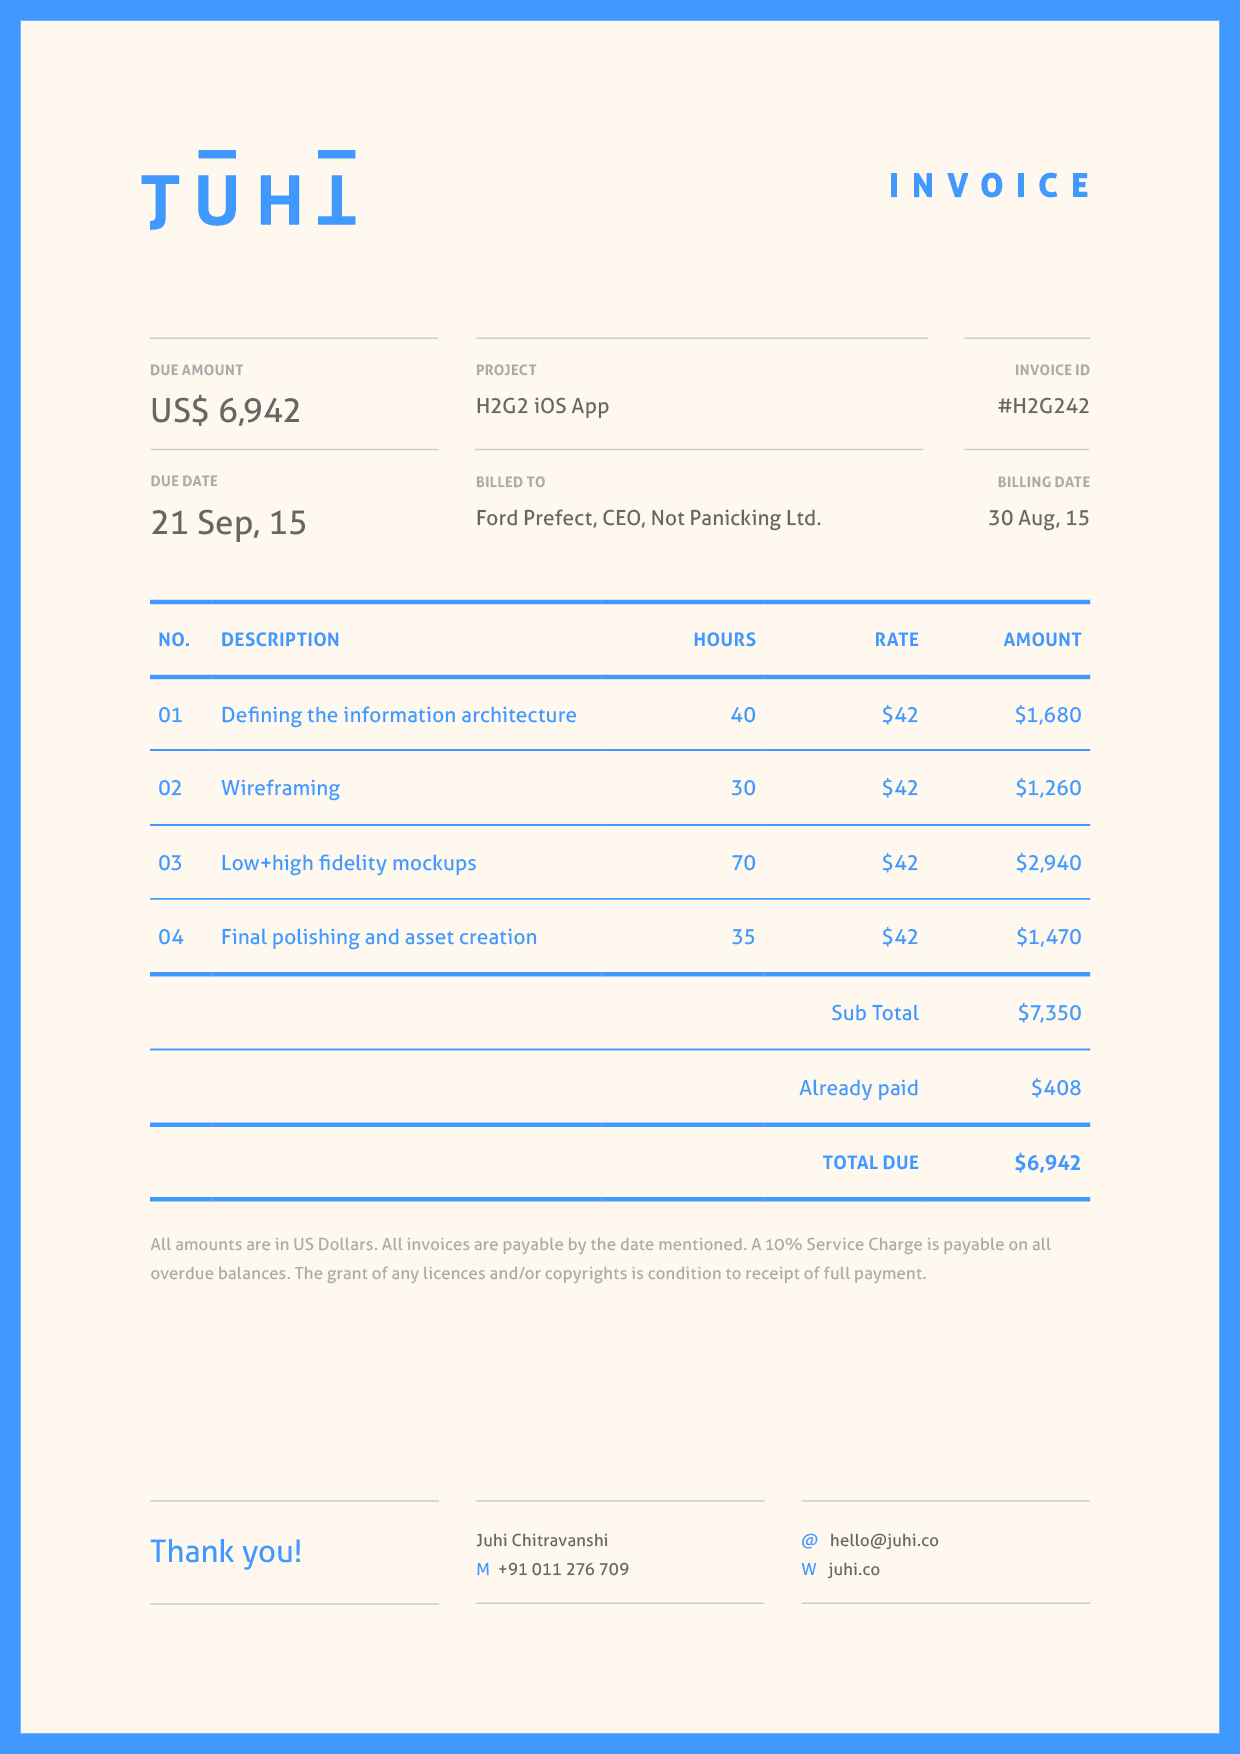 Coachoutletonlineplusus  Winsome Dont Hold Back On Your Invoice  Inspiring Designs  With Exciting Invoice By Juhi Chitravanshi Follow With Delectable Receipt Of Documents Template Also What Is Receipt Number On Green Card In Addition Certified Return Receipt Fees And Alternative To Neat Receipts As Well As Professional Receipt Template Additionally Meatball Receipts From Inspirationfeedcom With Coachoutletonlineplusus  Exciting Dont Hold Back On Your Invoice  Inspiring Designs  With Delectable Invoice By Juhi Chitravanshi Follow And Winsome Receipt Of Documents Template Also What Is Receipt Number On Green Card In Addition Certified Return Receipt Fees From Inspirationfeedcom